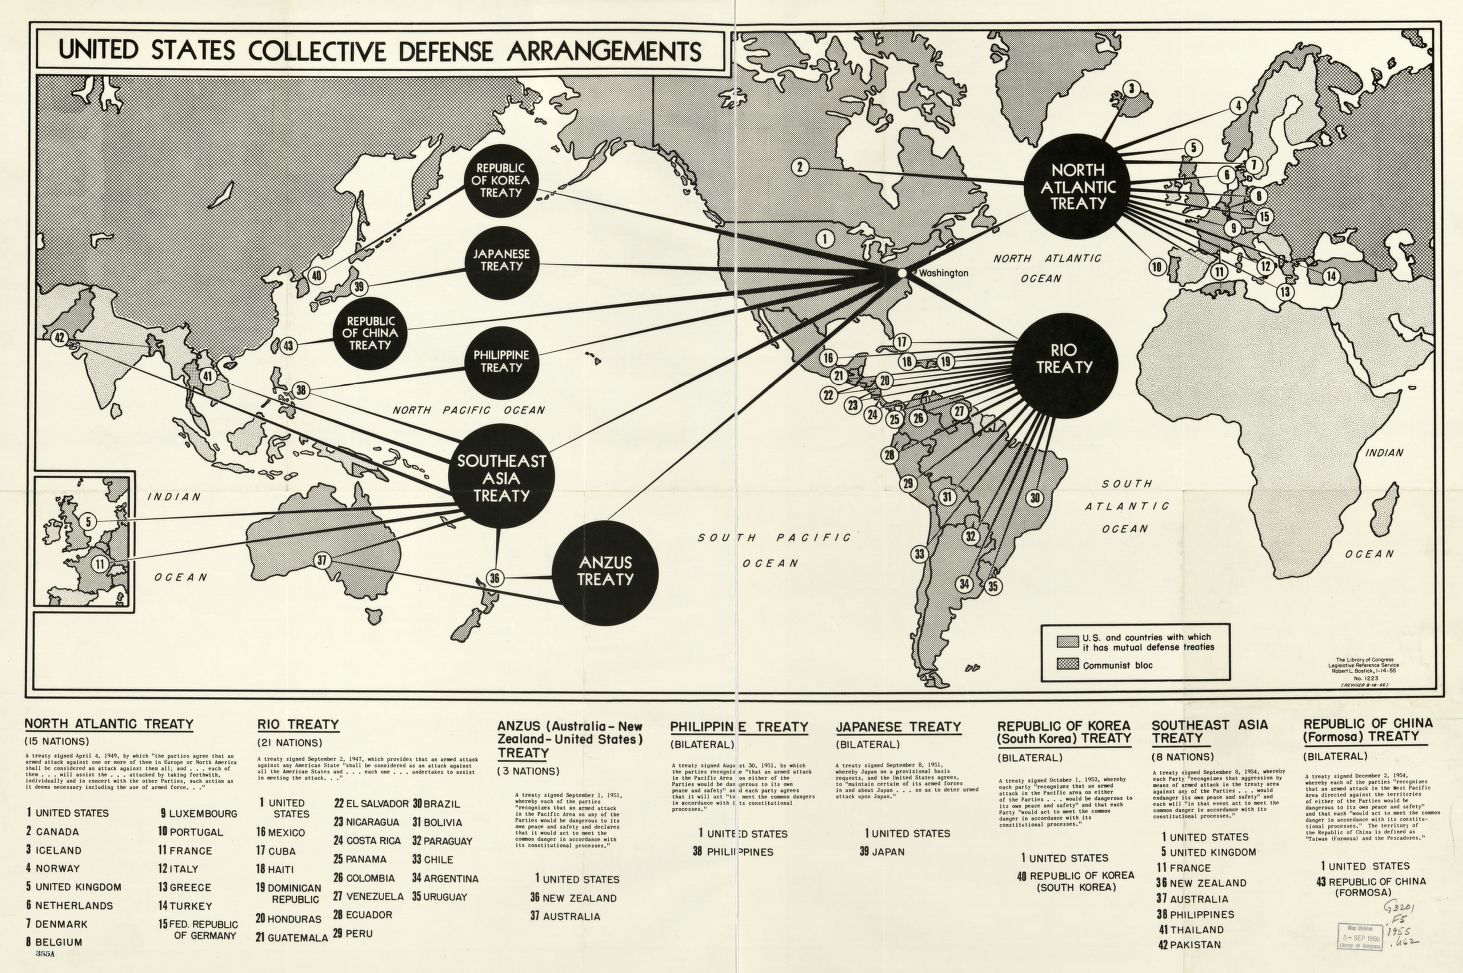 Check out this 1966 #map of US collective #defense arrangements!  https://t.co/ahNBbJlTyn https://t.co/mgKEgfrglK